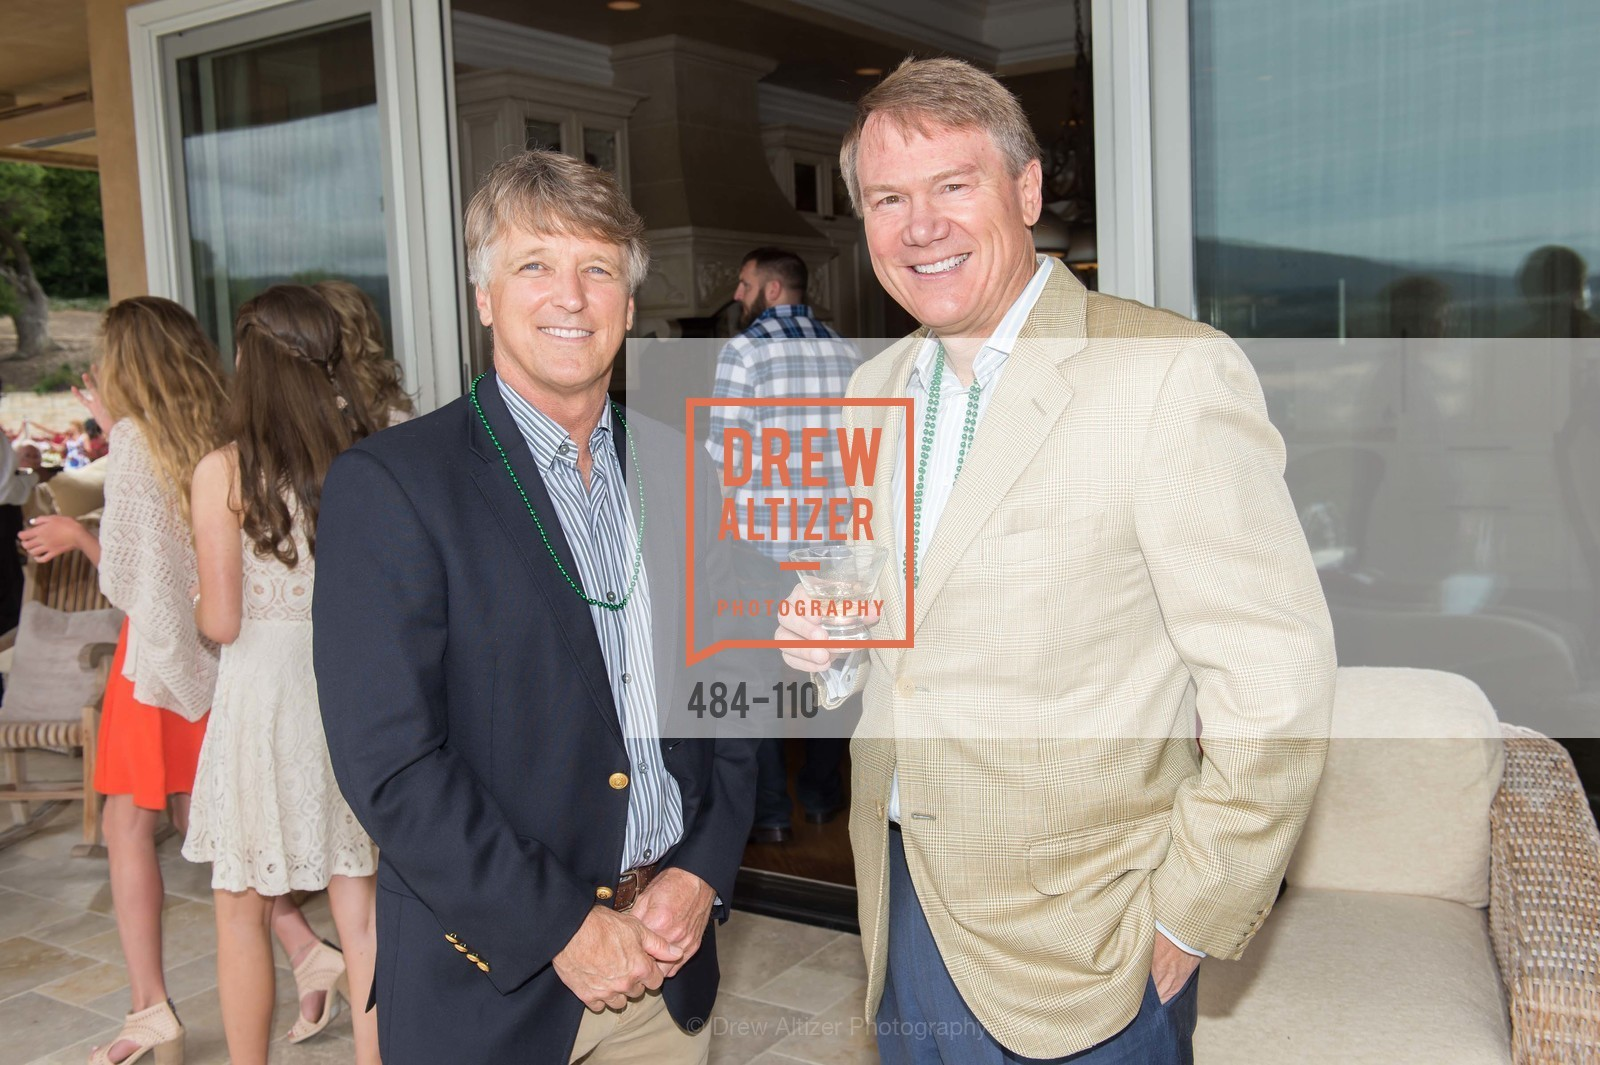 Bert Inch, Don Morris, LYME AID 2015 Benefiting the Bay Area Lyme Foundation, Private Residence, May 16th, 2015,Drew Altizer, Drew Altizer Photography, full-service agency, private events, San Francisco photographer, photographer california